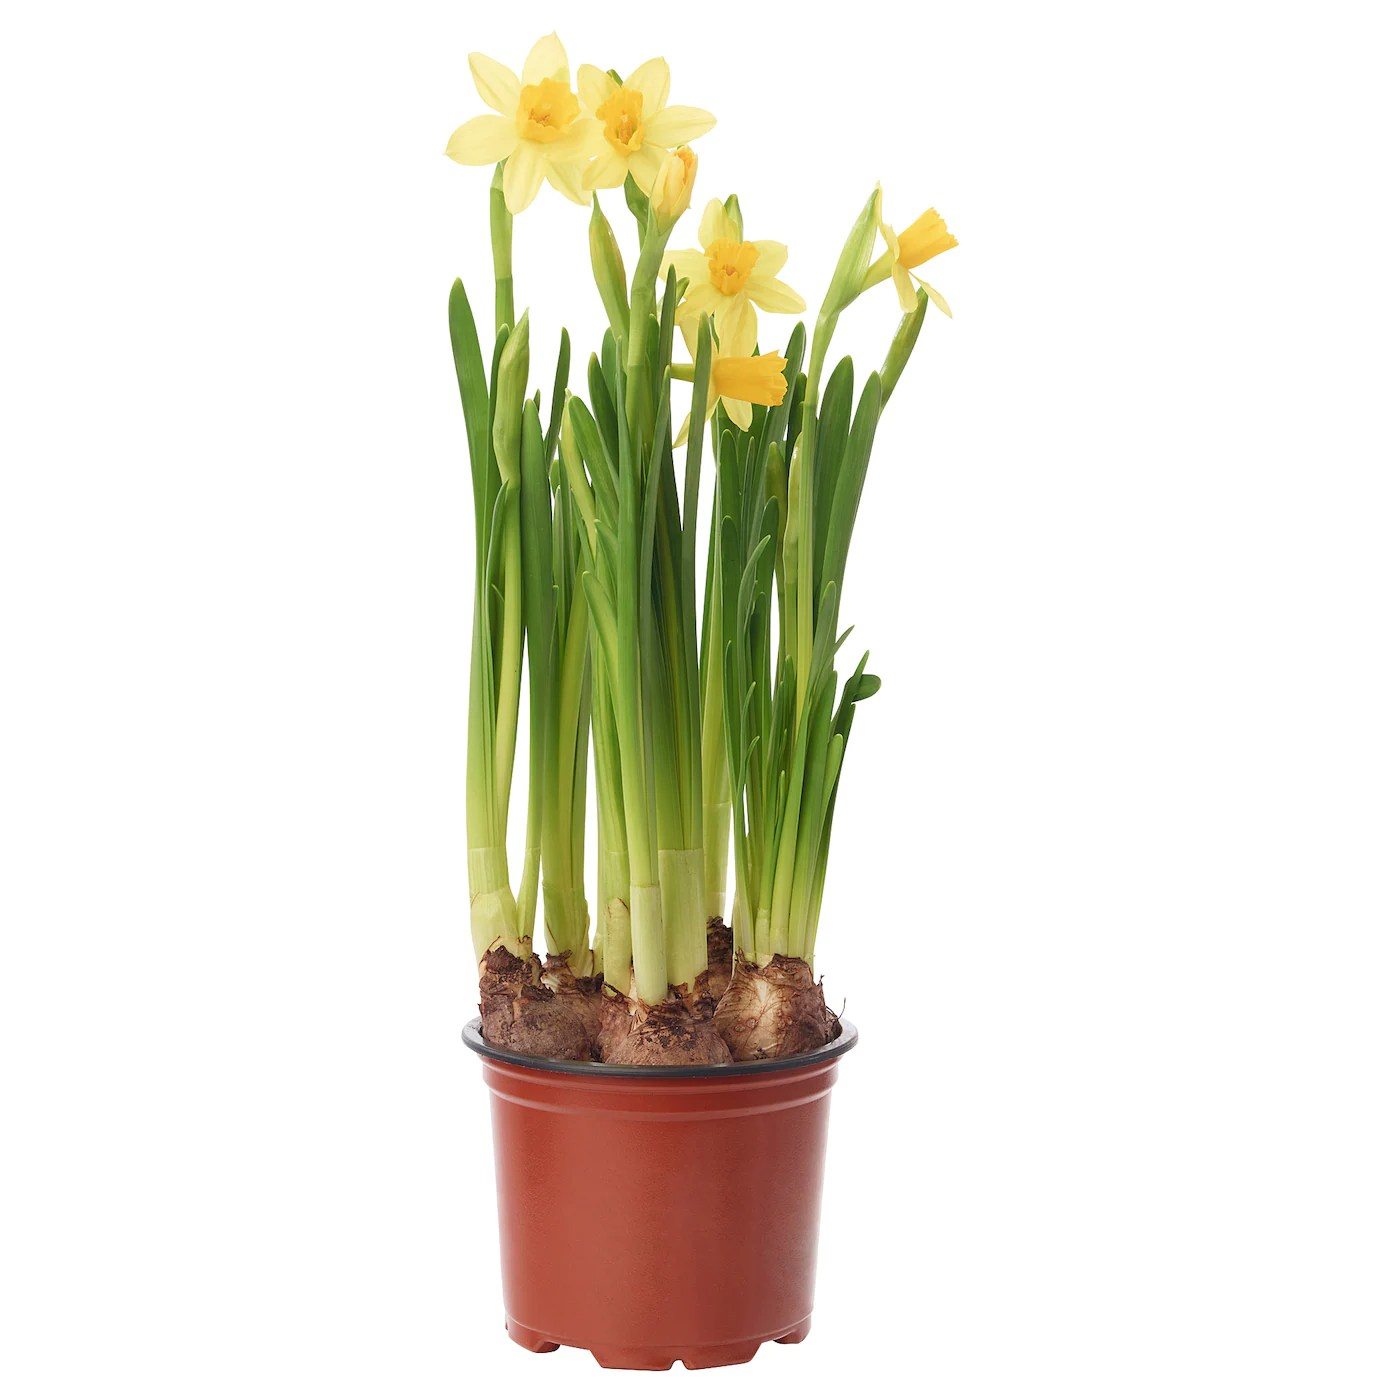 Narcissus Cyclamineus Narcissus Cyclamineus Tete A Tete Potted Plant Daffodil 9